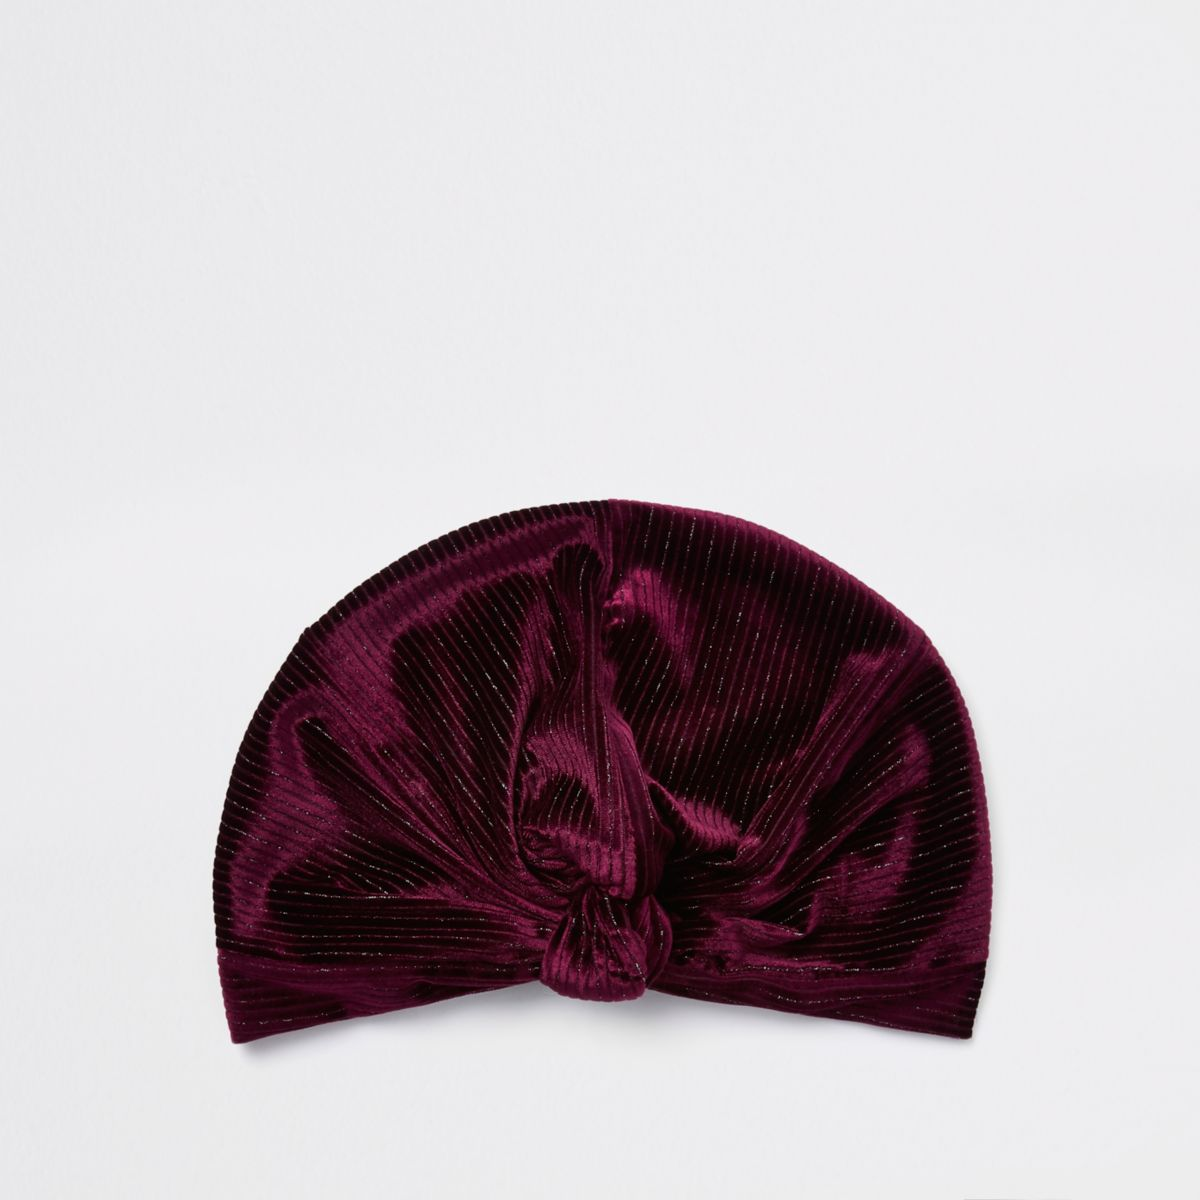 Burgundy plisse velvet twist turban headband